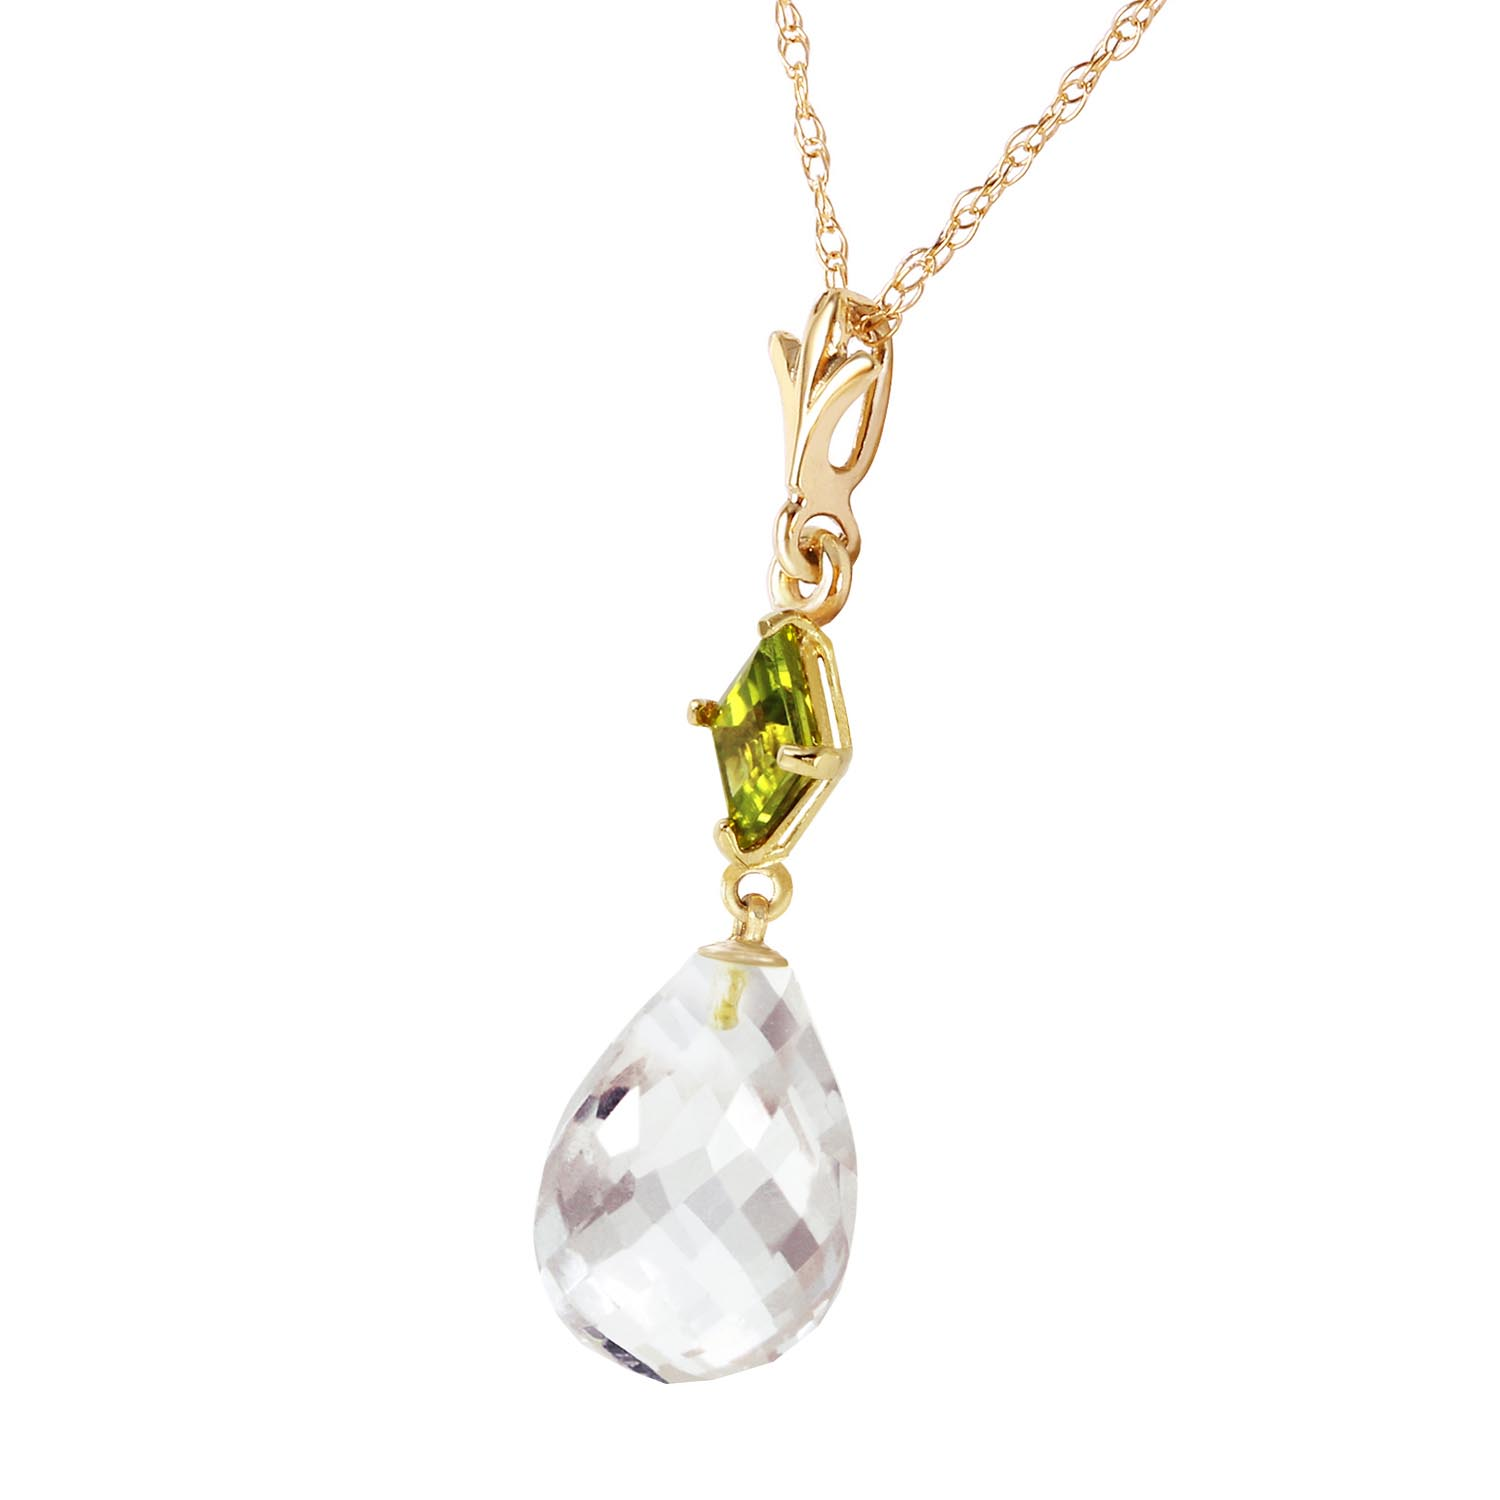 White Topaz and Peridot Pendant Necklace 5.5ctw in 9ct Gold